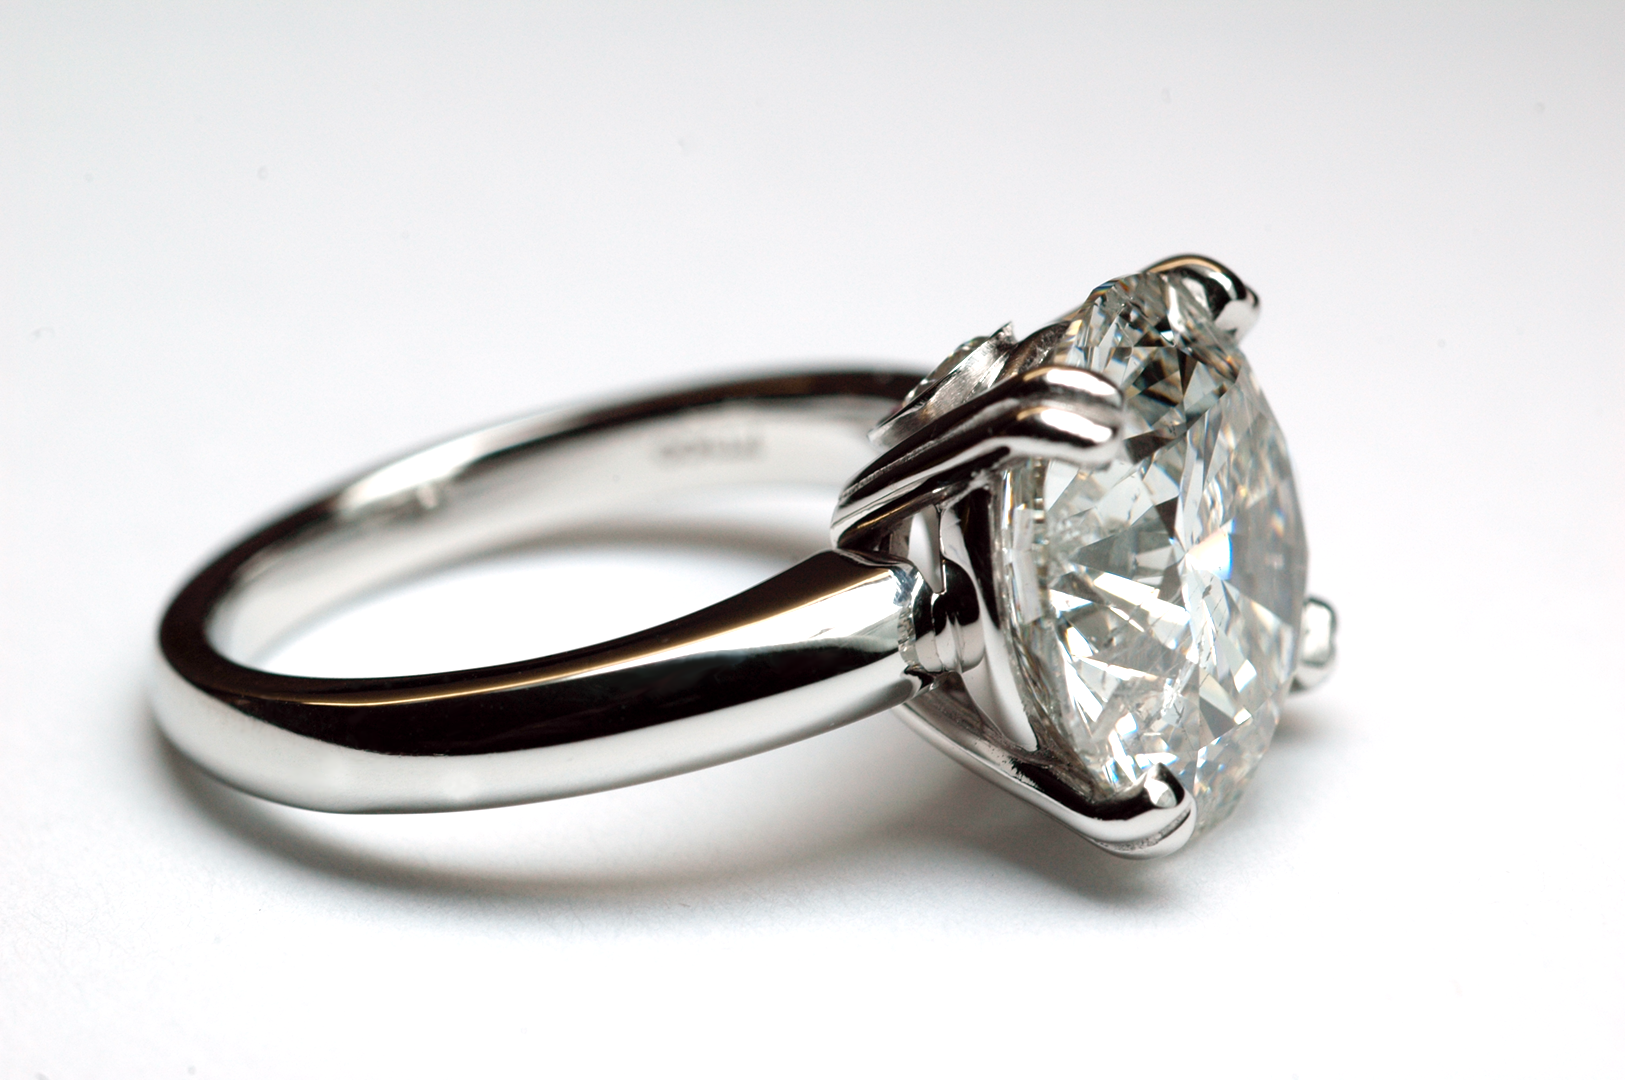 Diamond and platinum solitaire ring Copyrighted Original by Thomas Michaels